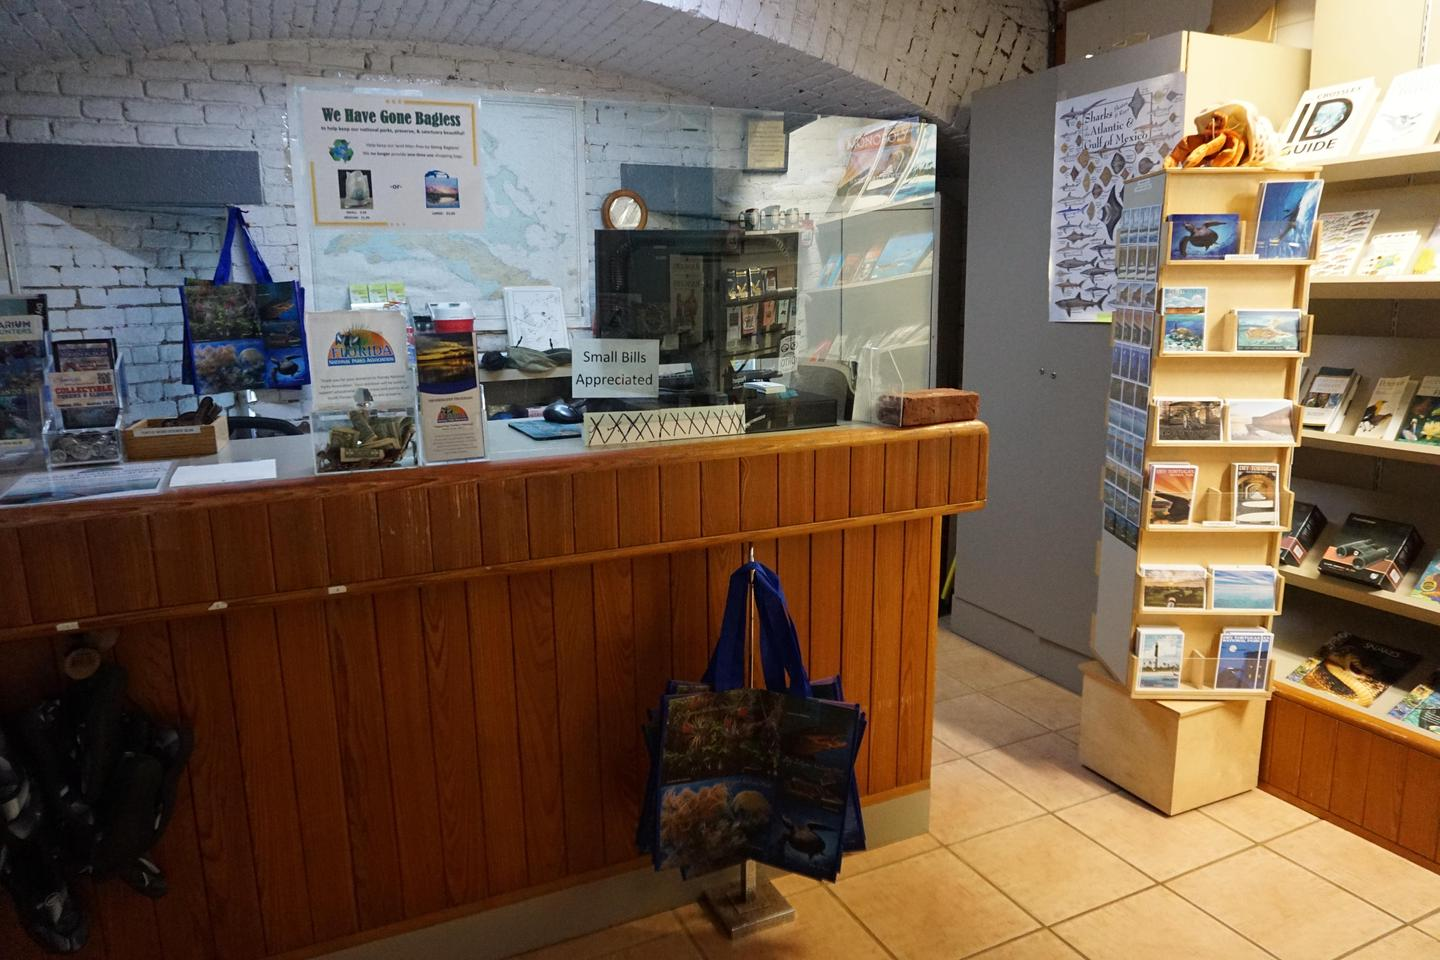 Garden Key BookstoreThe Bookstore in the Garden Key Visitor Center has gifts and souvenirs for purchase